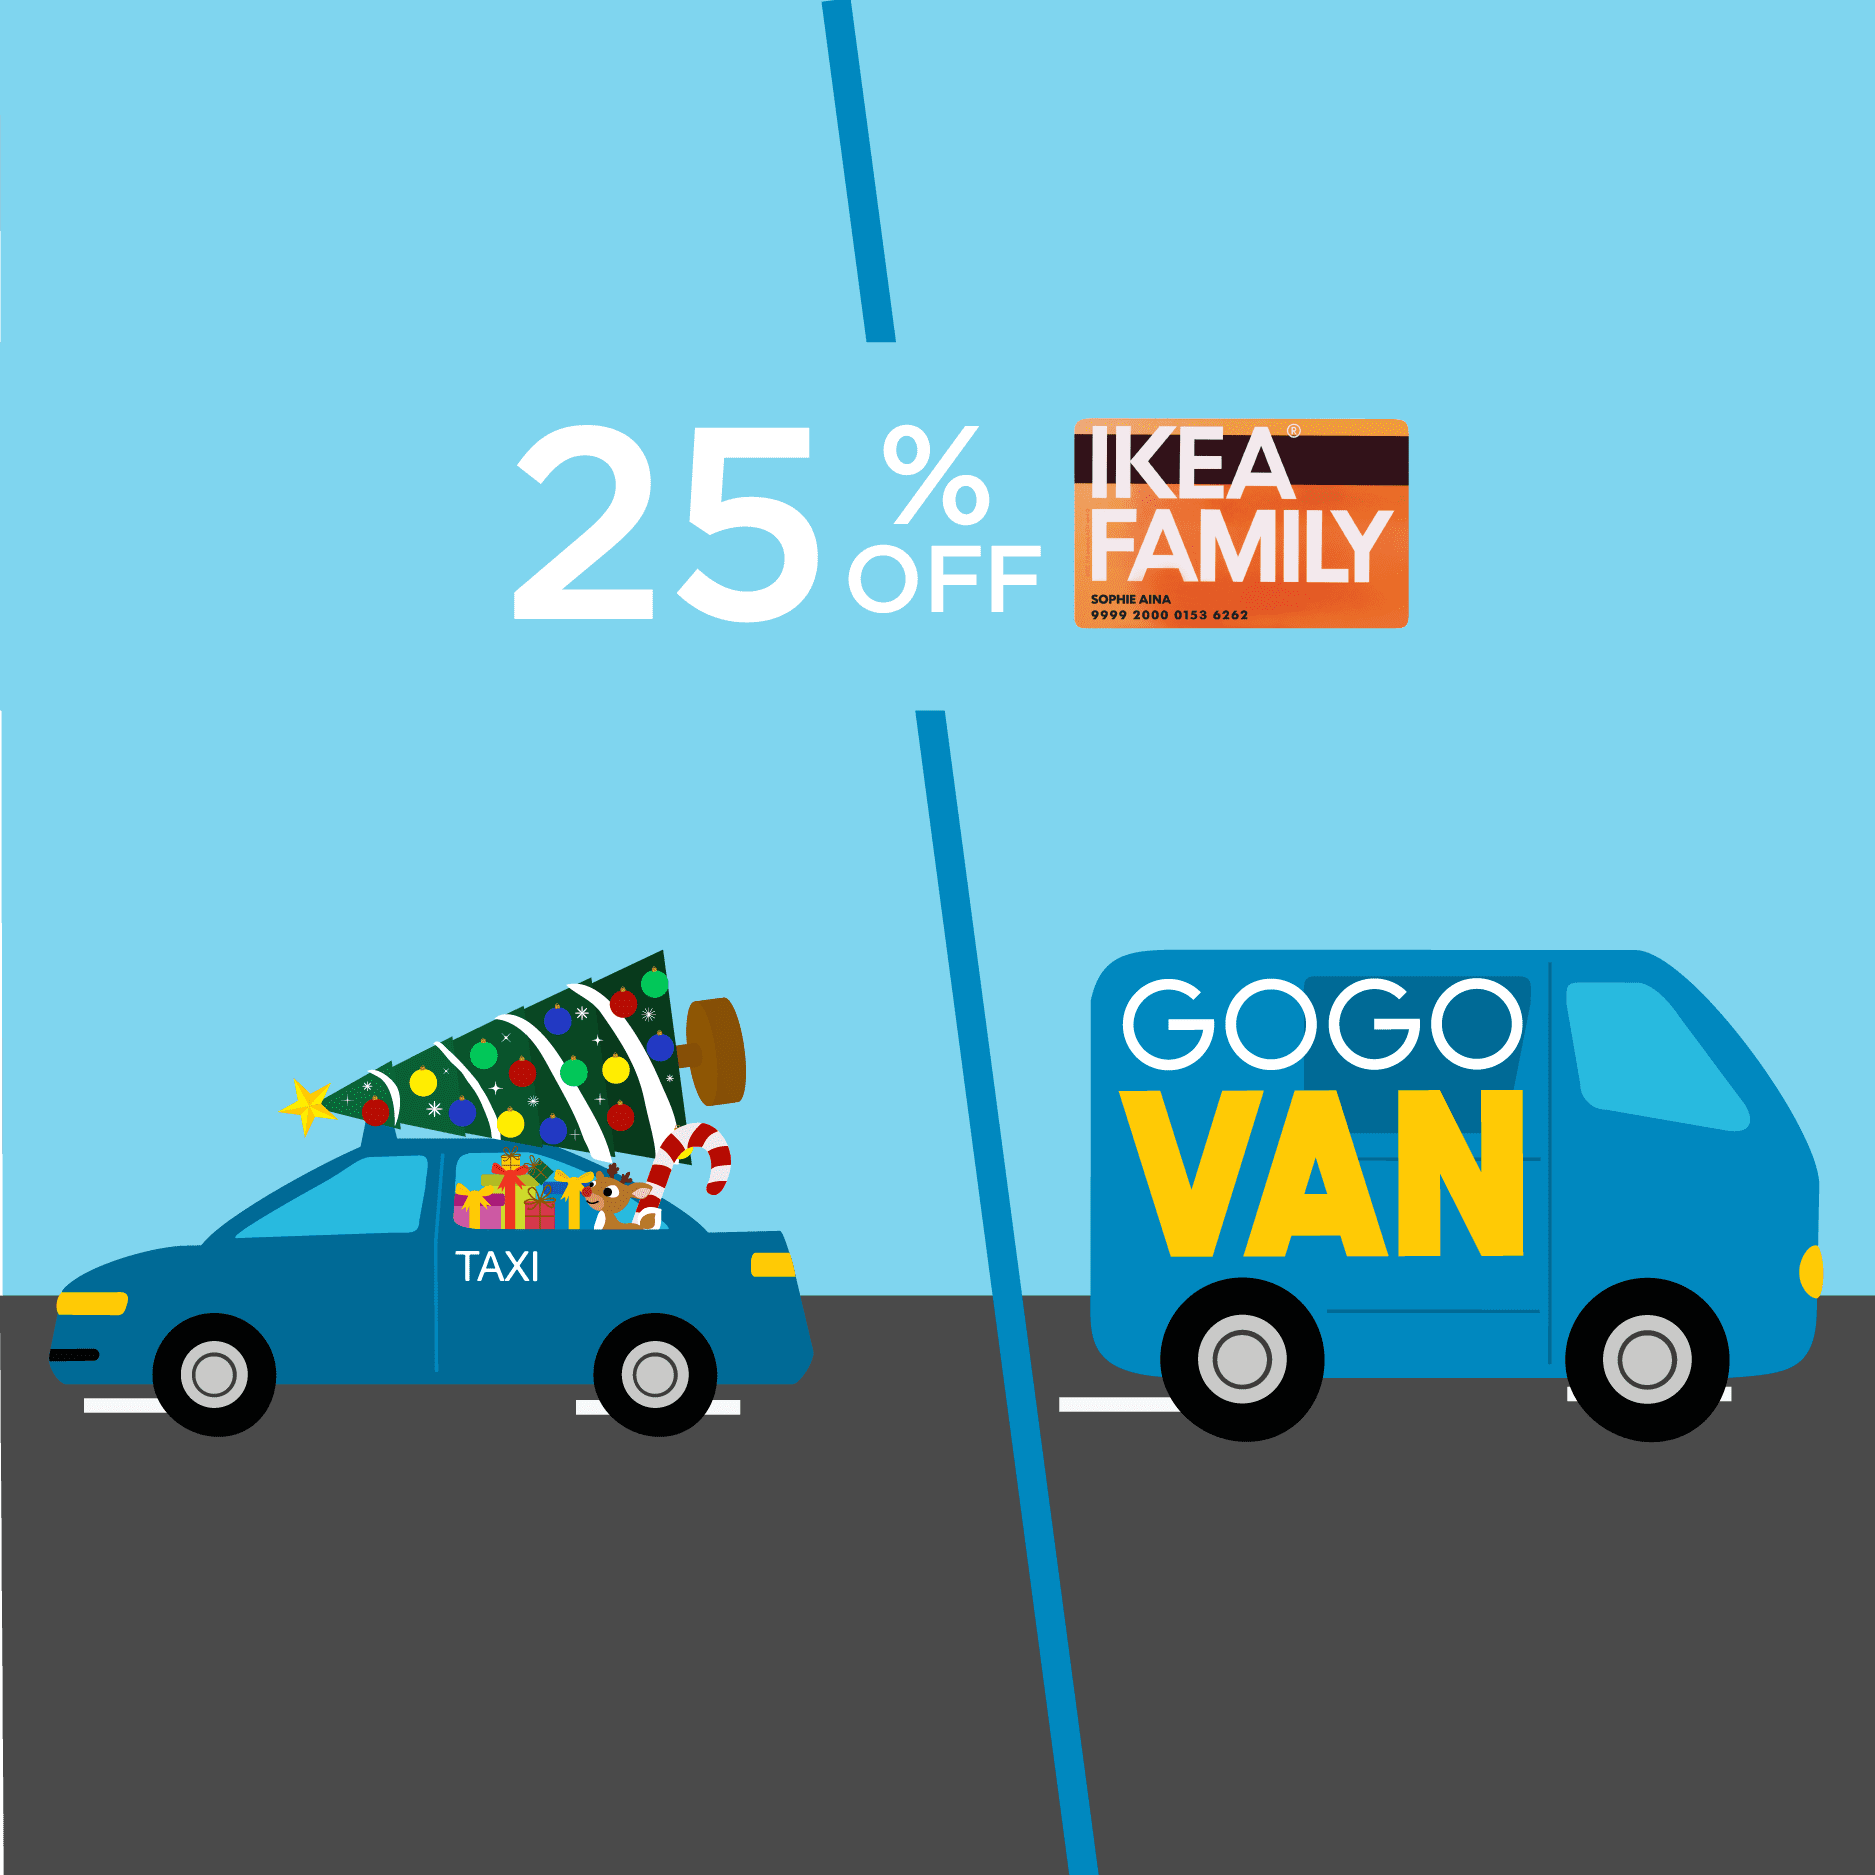 25% off for all IKEA FAMILY members